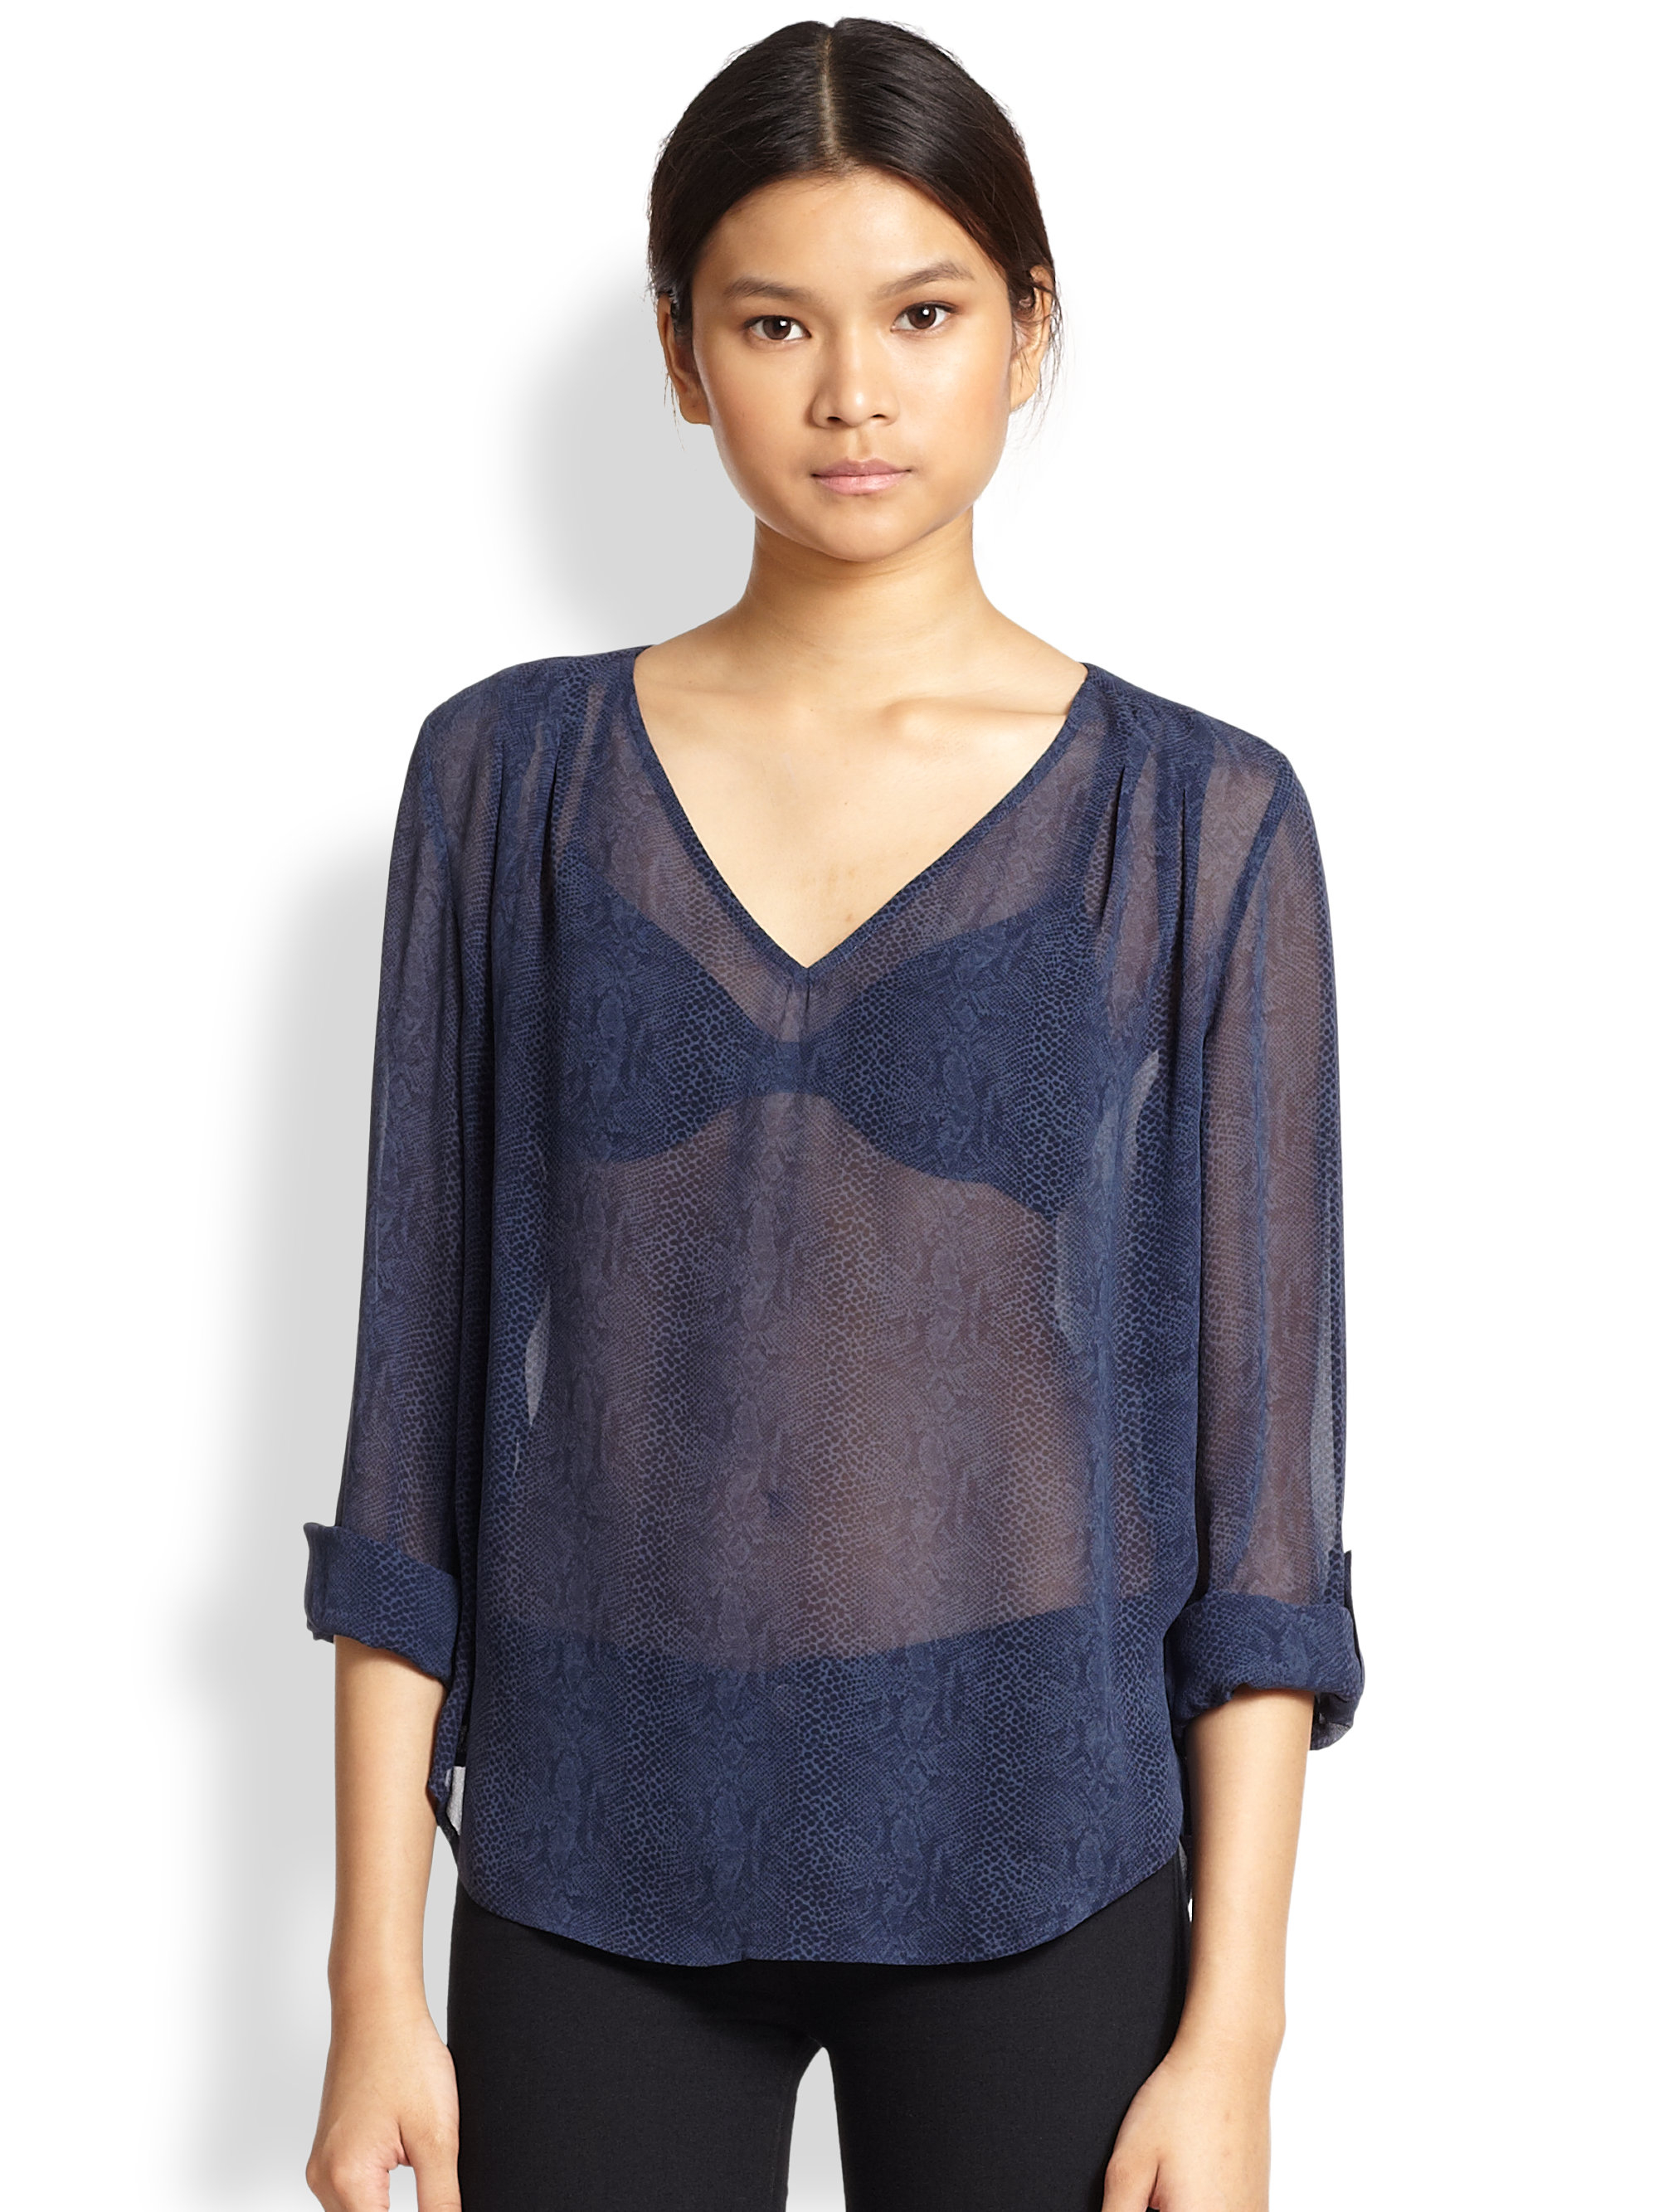 Product Description: Soft sheer blouse features a ruffled neck with a lovely lace-up detail. Long sleeves with a flared cuff. Elastic waist details for added tanahlot.tk: Rosegal.